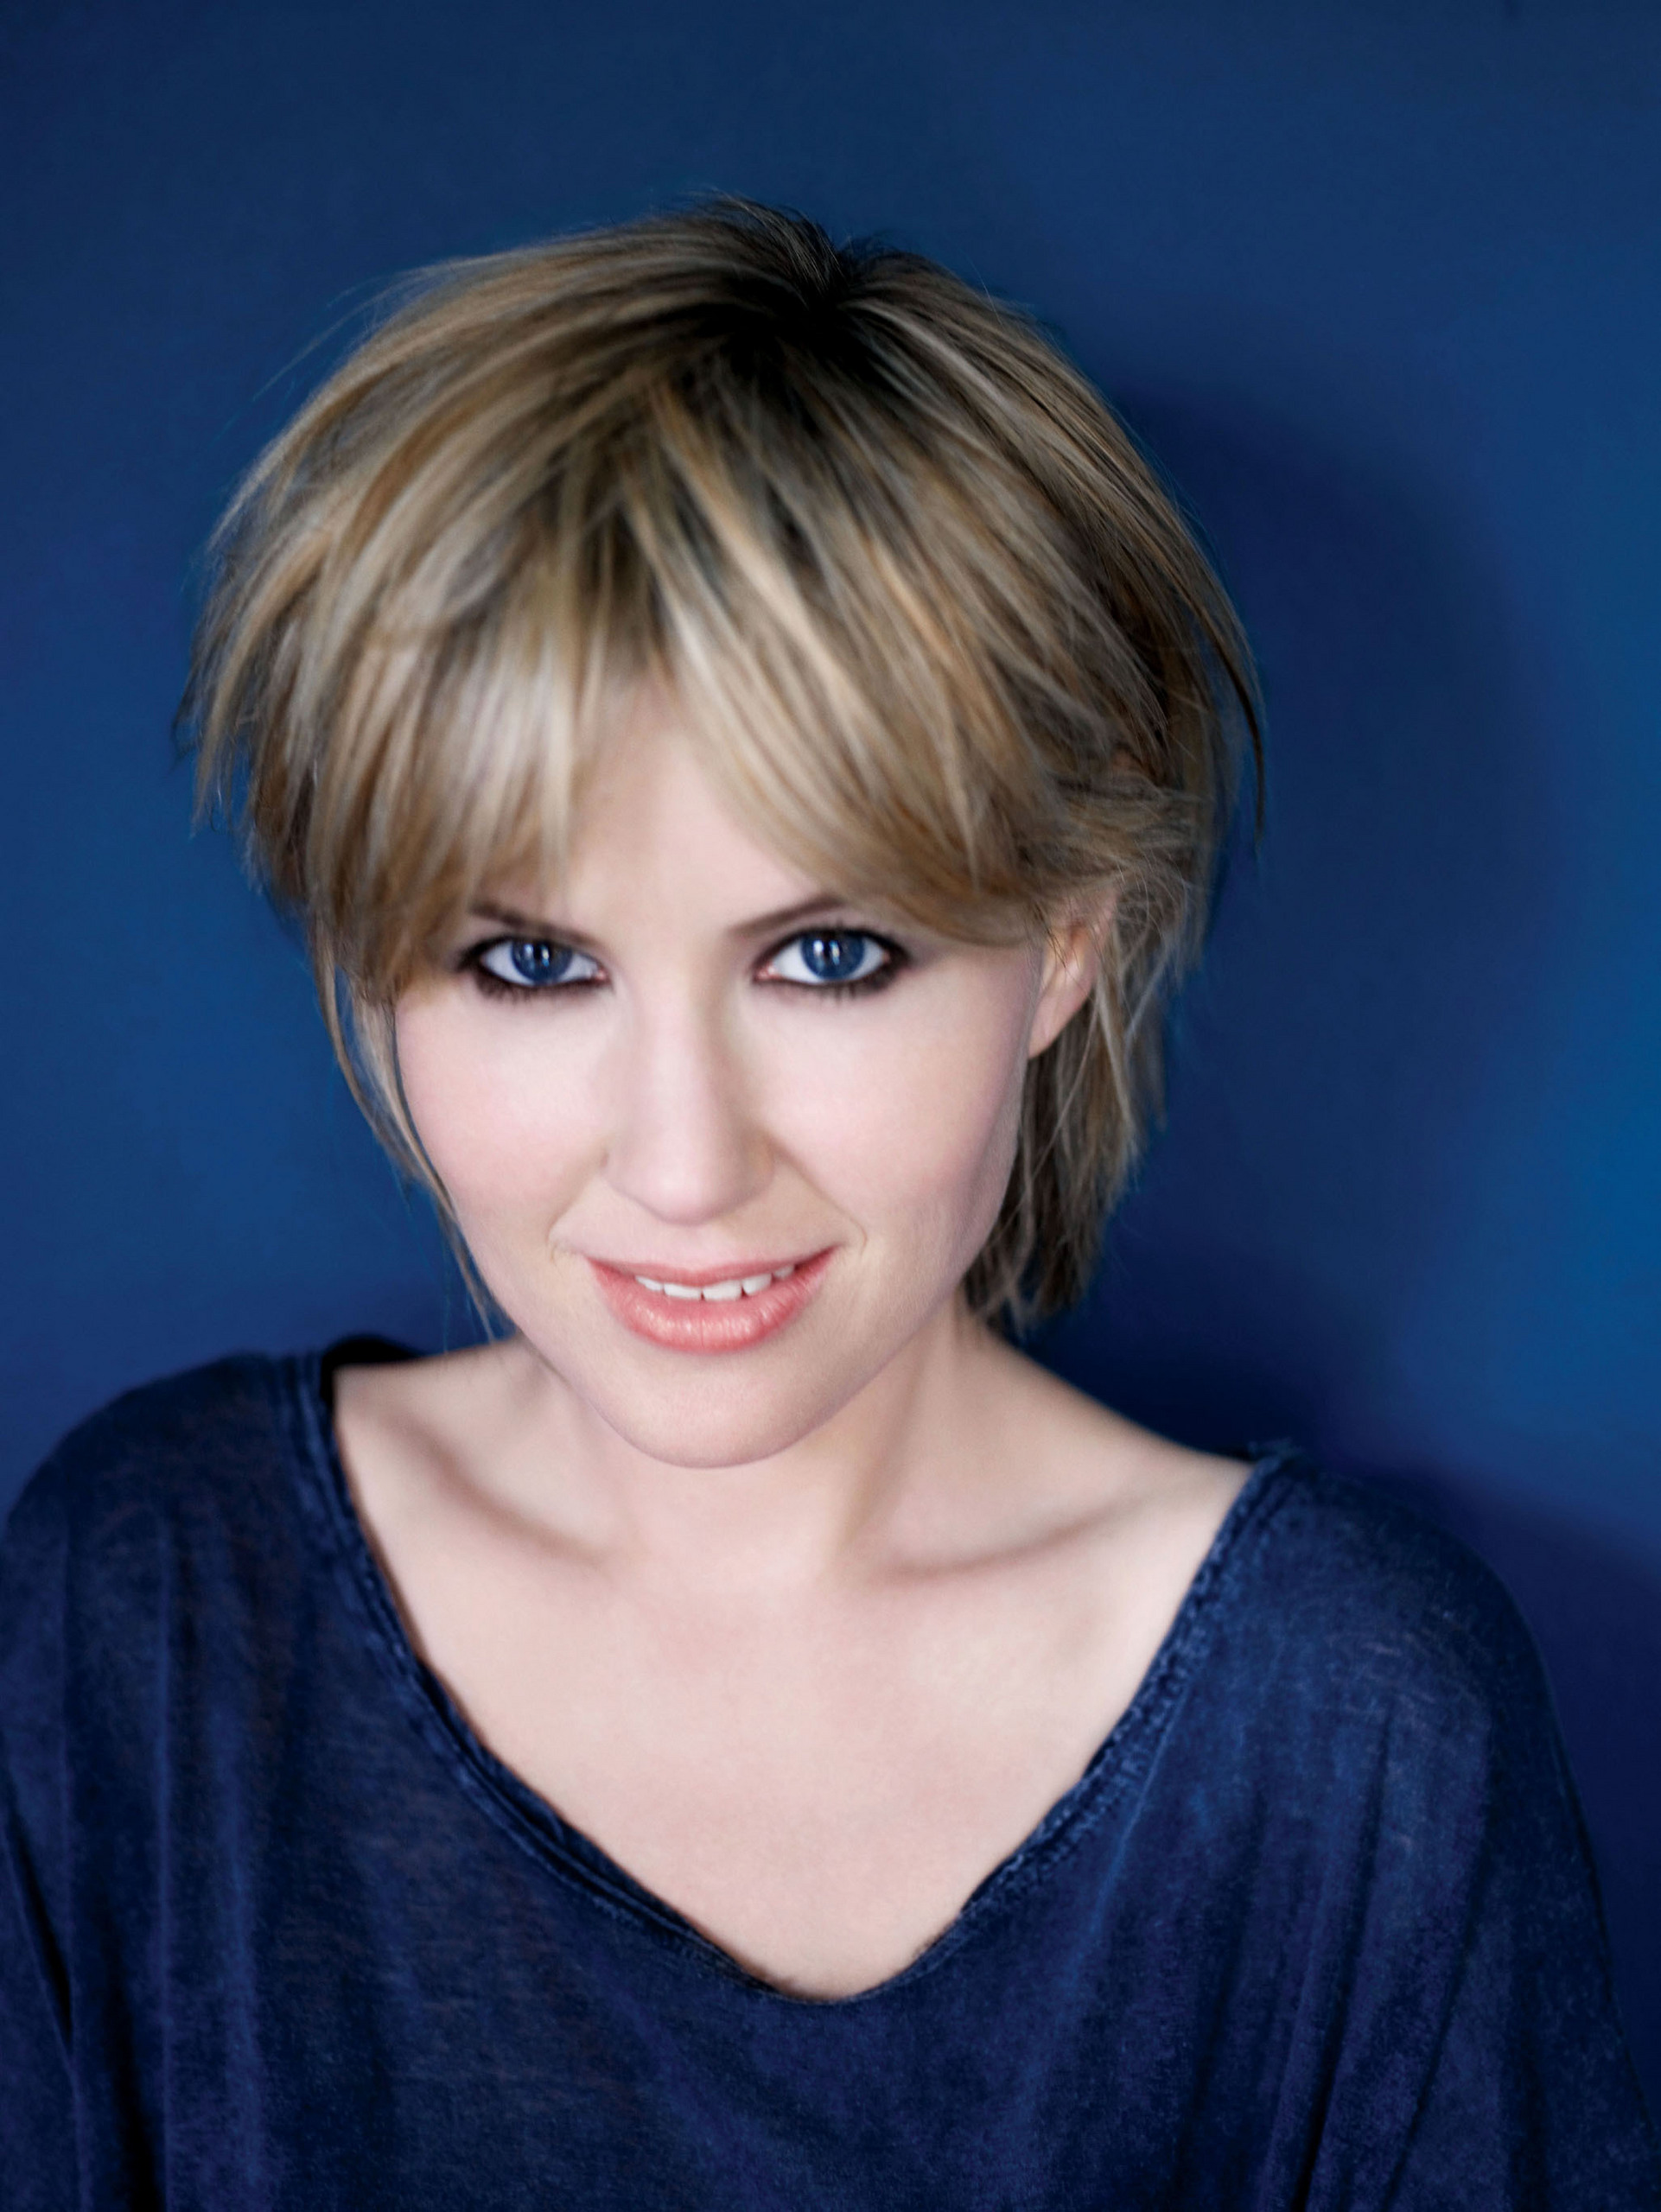 Dido images Dido HD wallpaper and background photos (7437551)